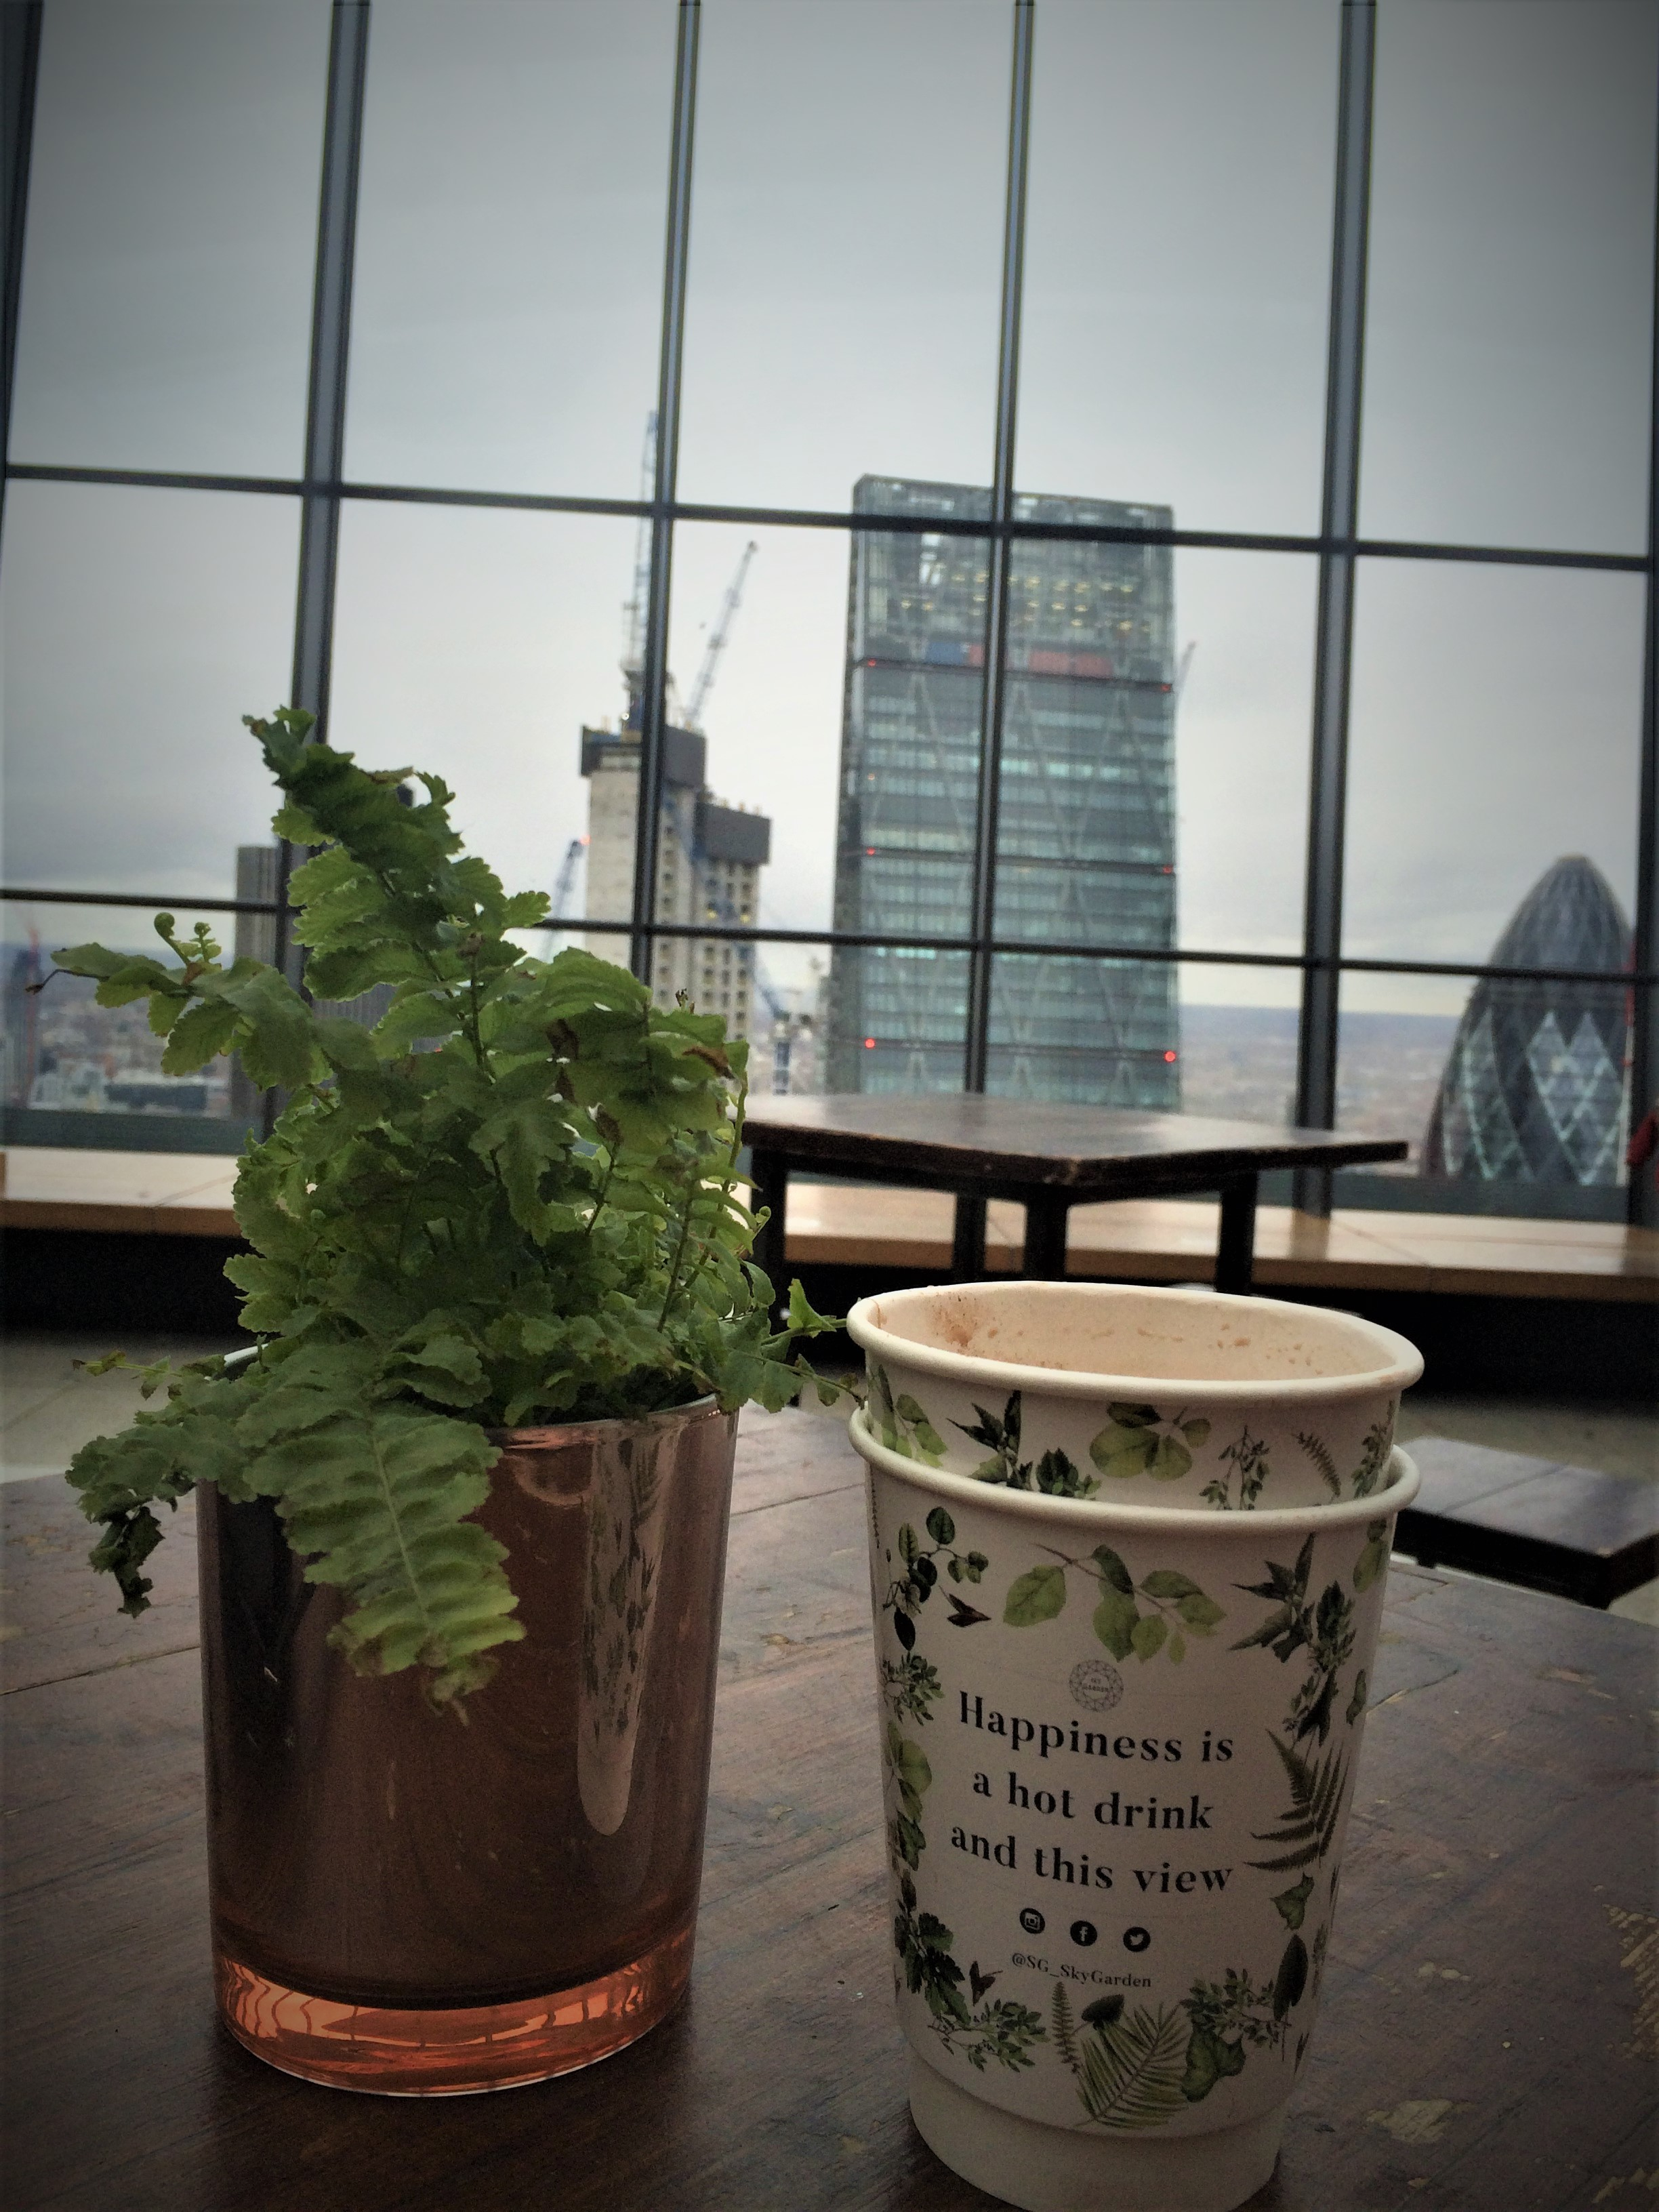 """A plant in a golden pot next to a cup with the quote """"happiness is a hot drink and this view"""", Then the view of London's skyline in the background."""